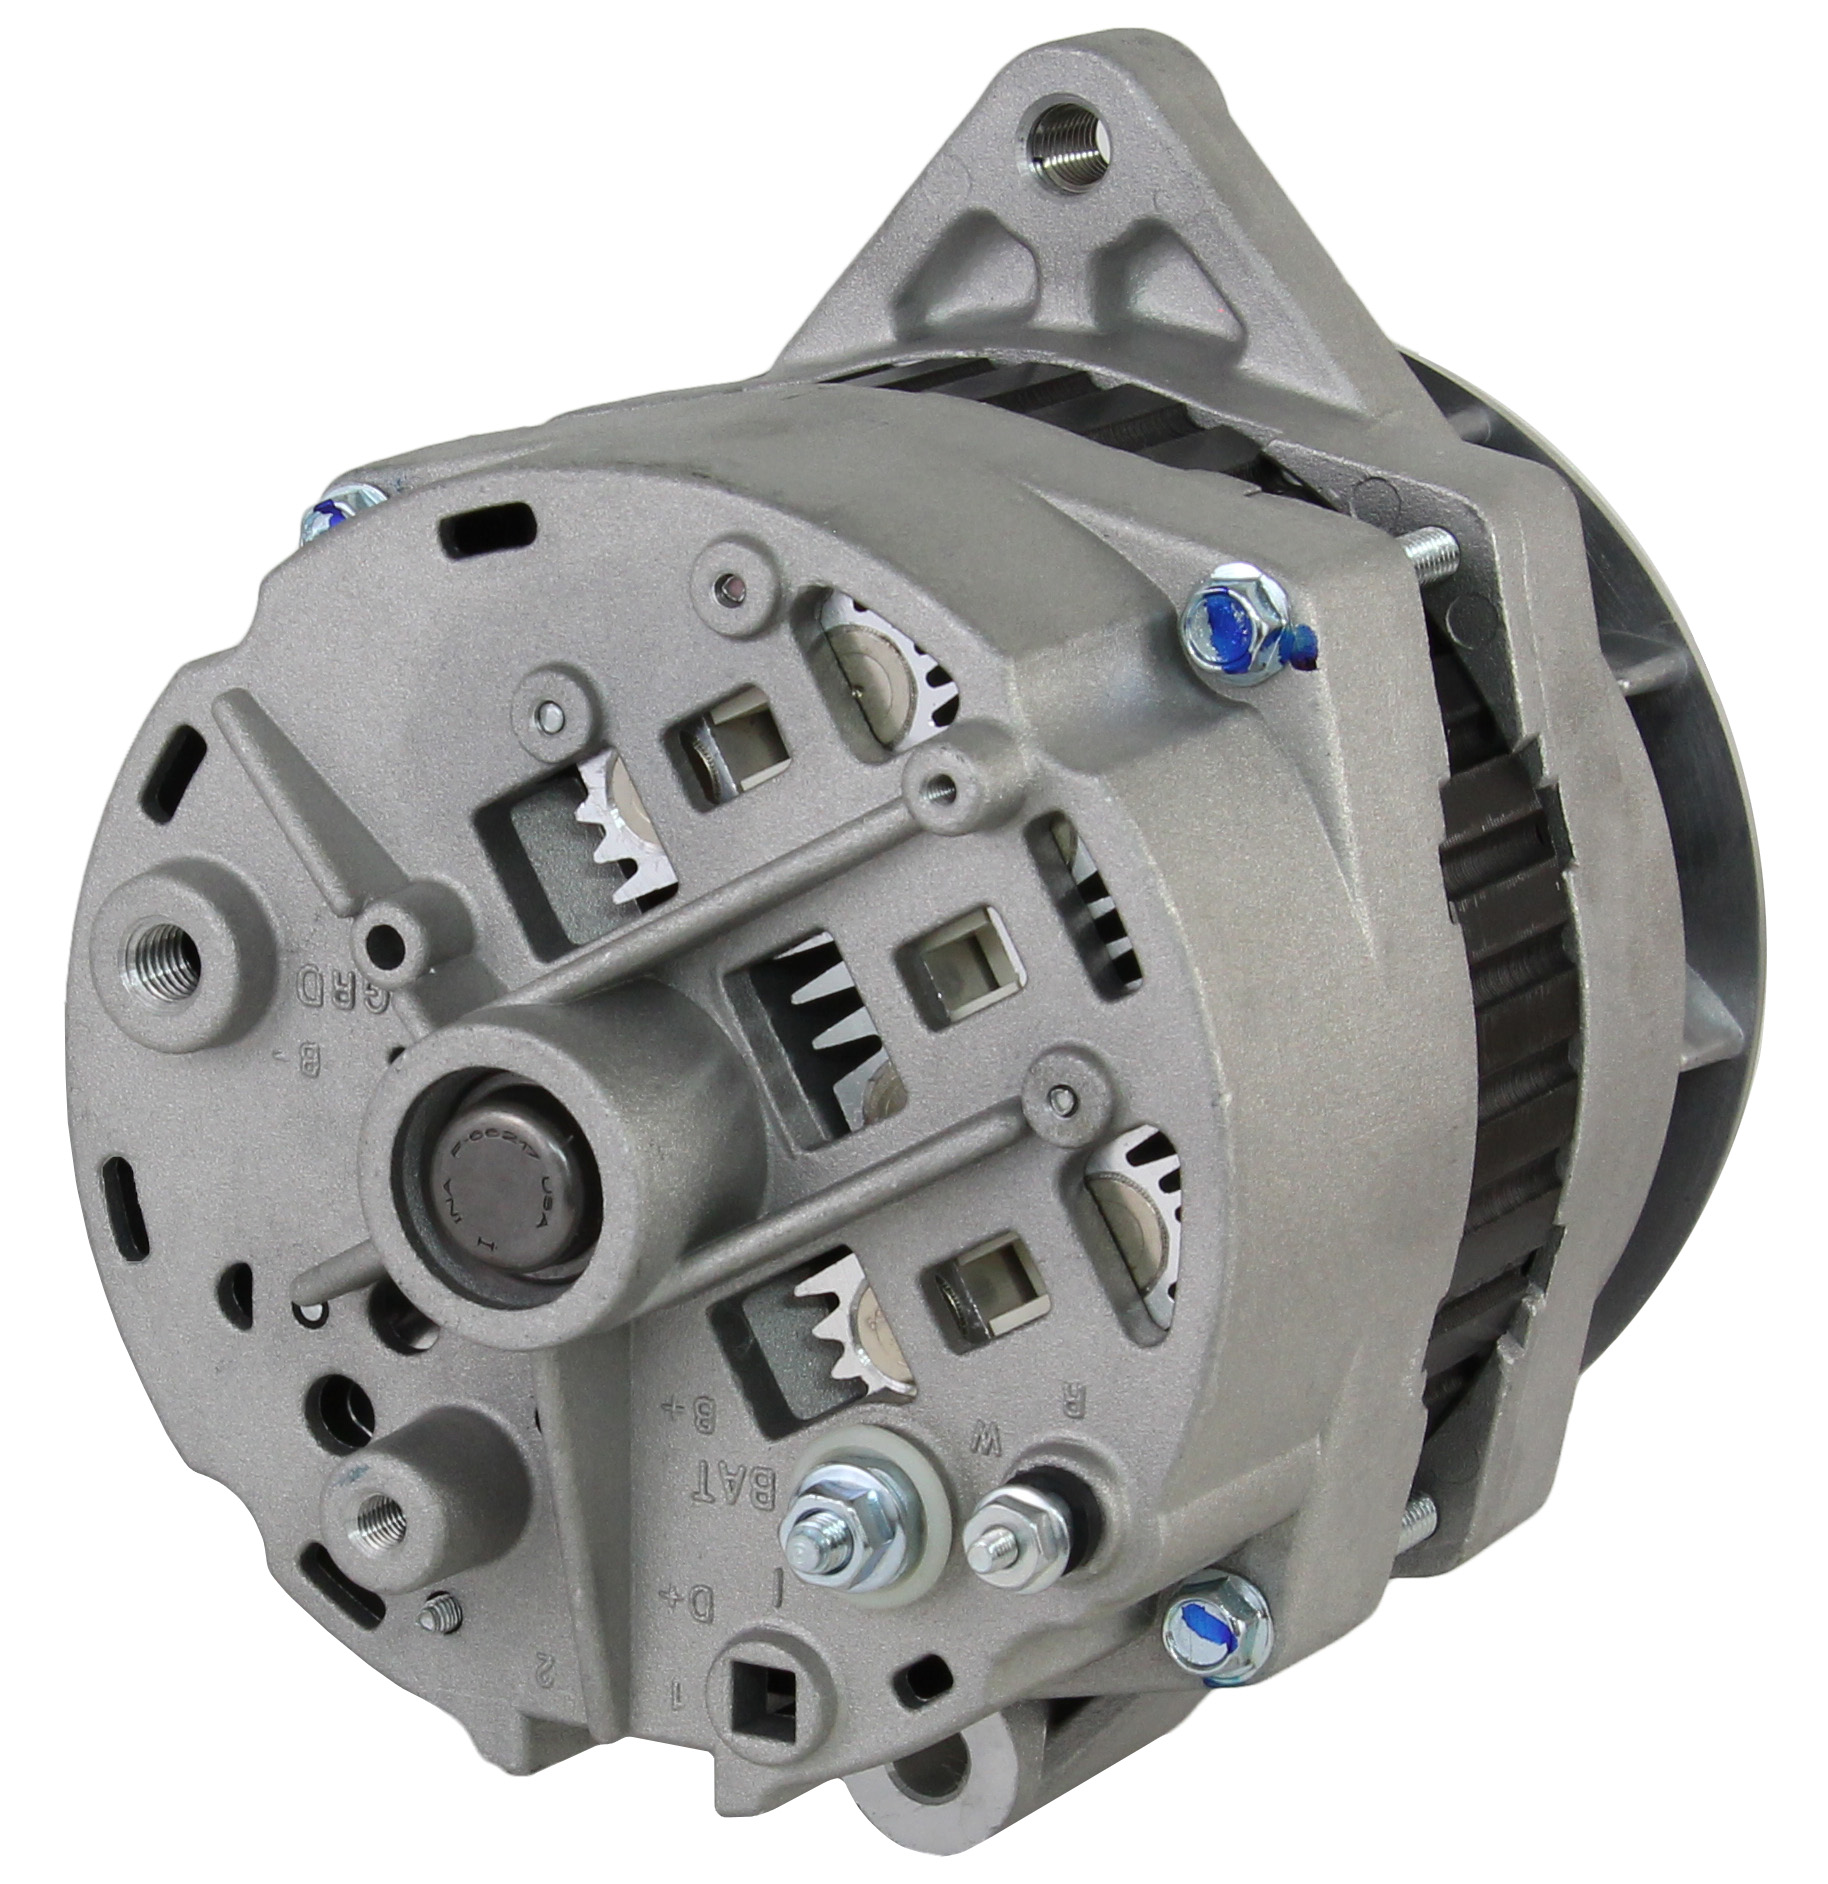 NEW ALTERNATOR FITS PREMIER WINDROWER 2940 2950 MACDON WINDROWER 9250 19009951